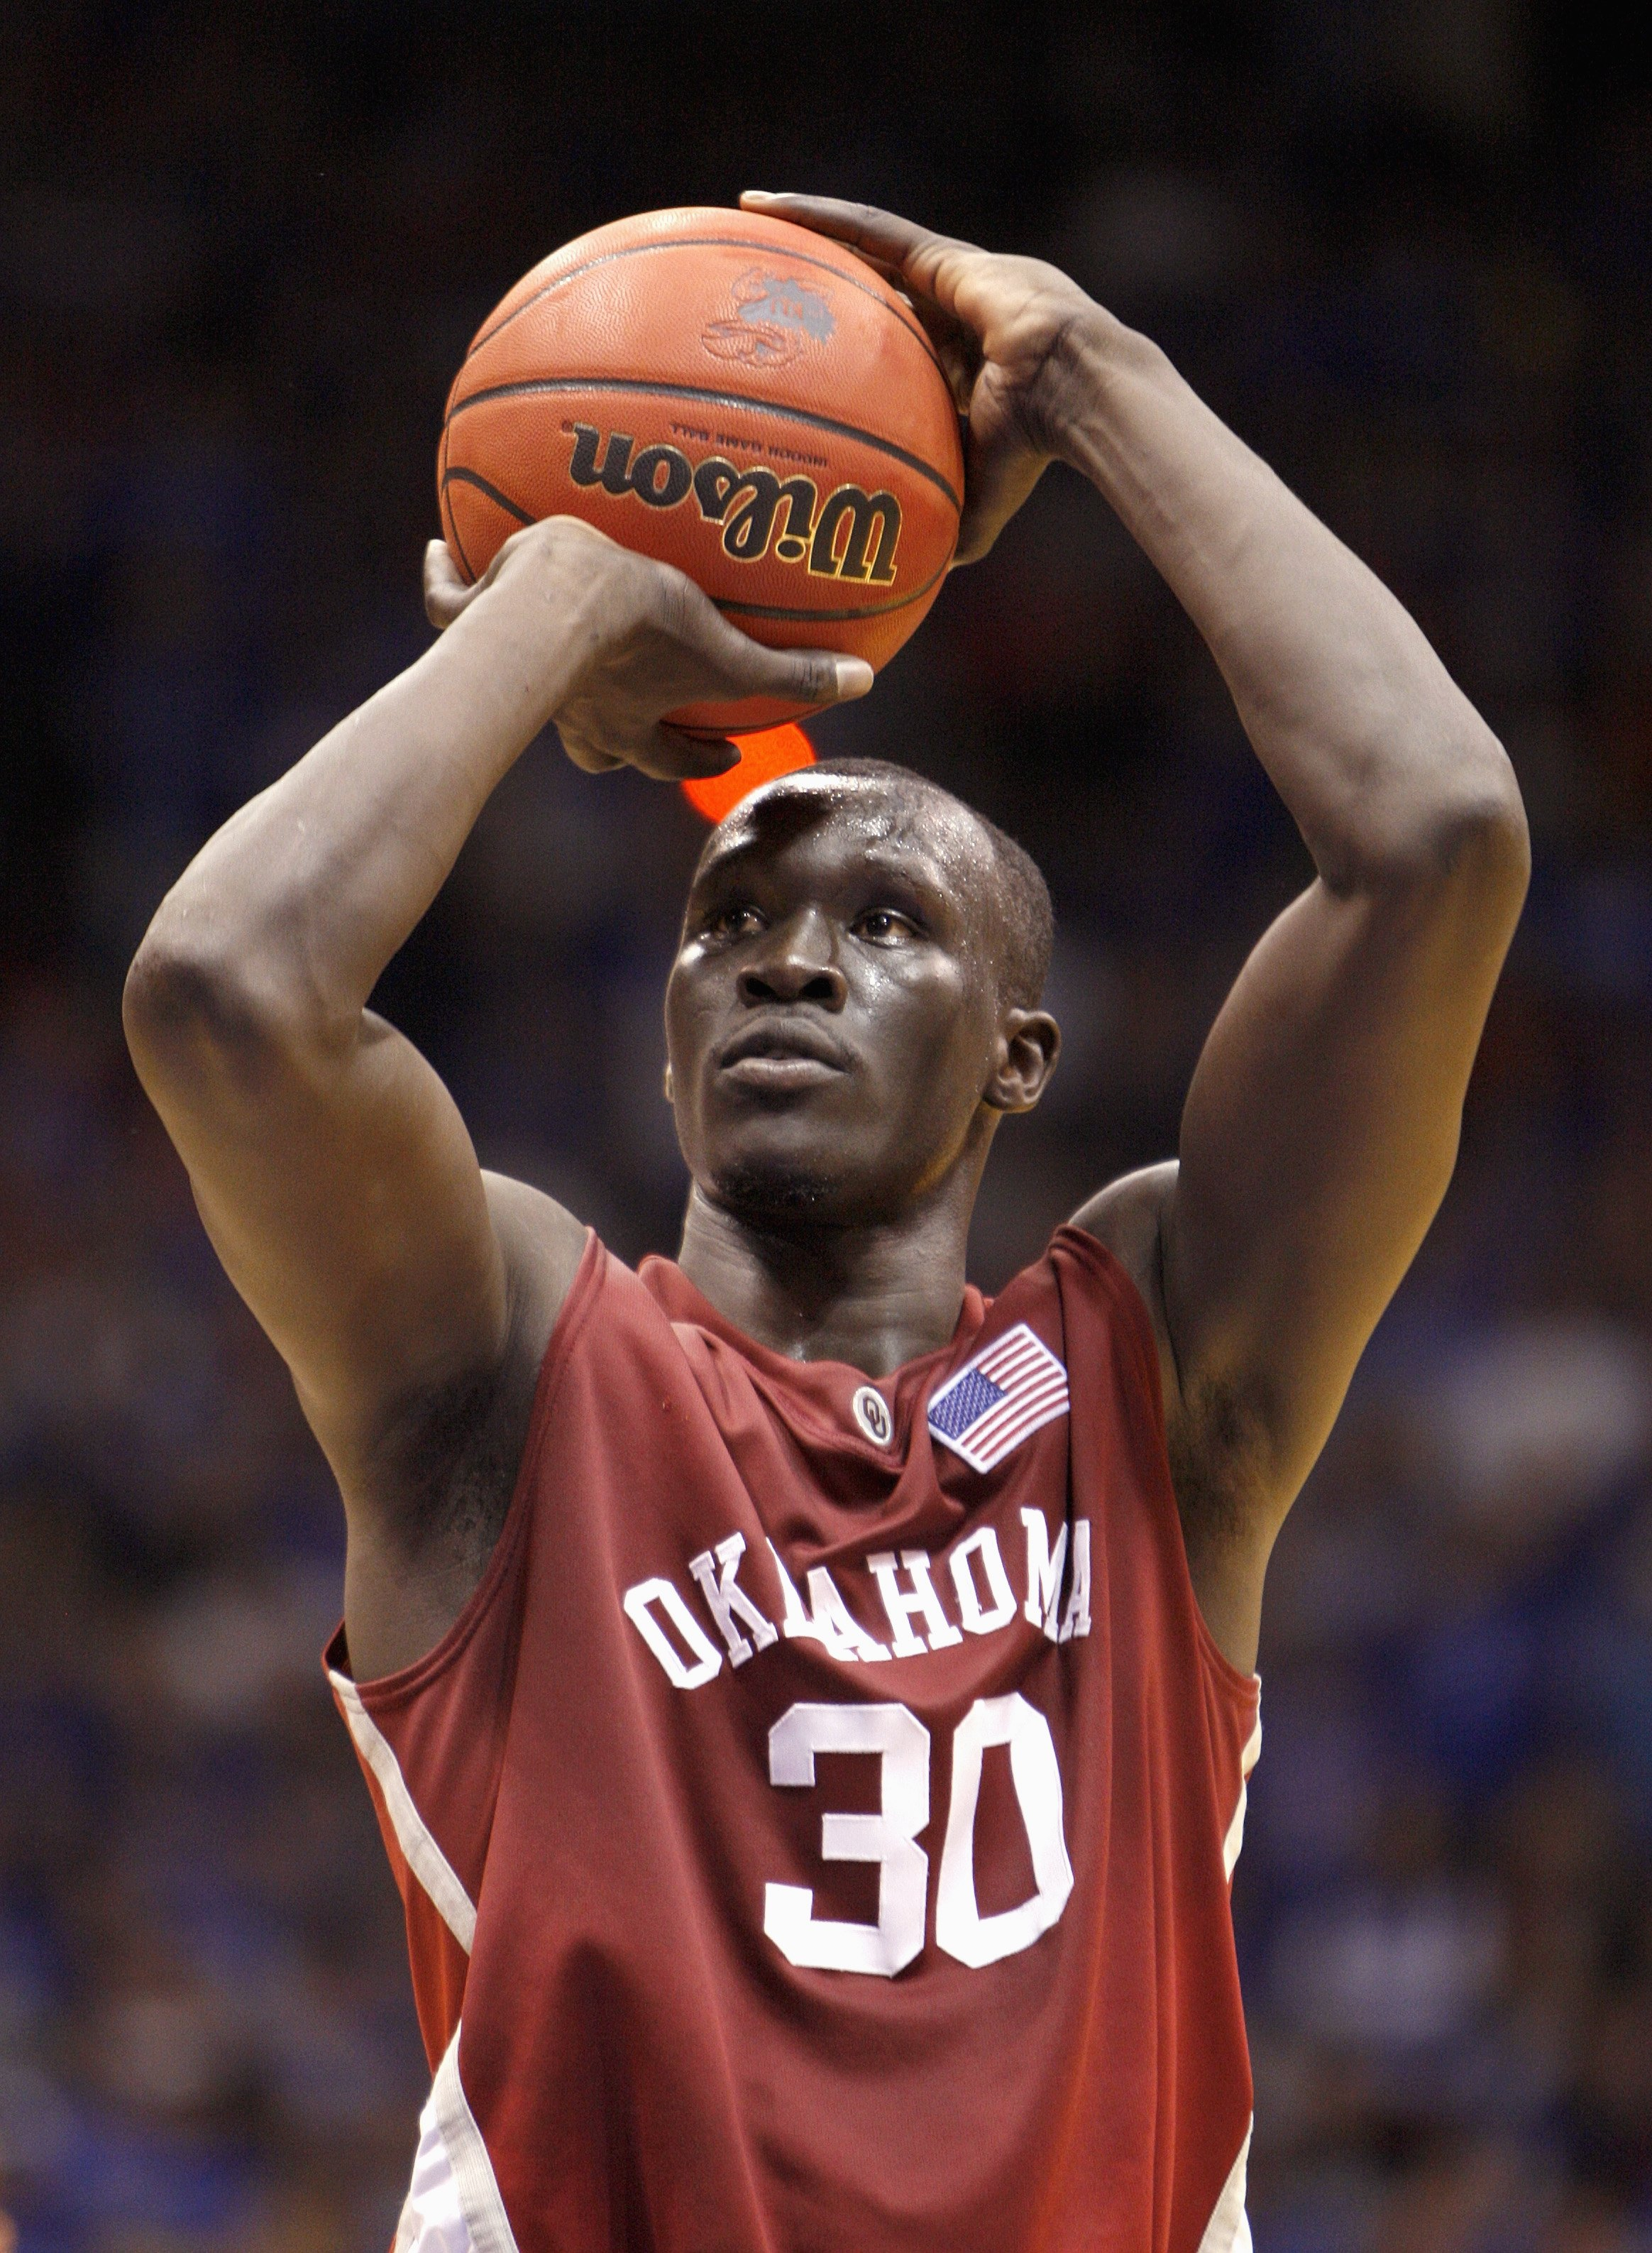 LAWRENCE, KS - JANUARY 14: Longar Longar #30 of the Oklahoma Sooners makes a free throw during the game against the Kansas Jayhawks on January 14, 2008 at Allen Fieldhouse in Lawrence, Kansas. (Photo by Jamie Squire/Getty Images)